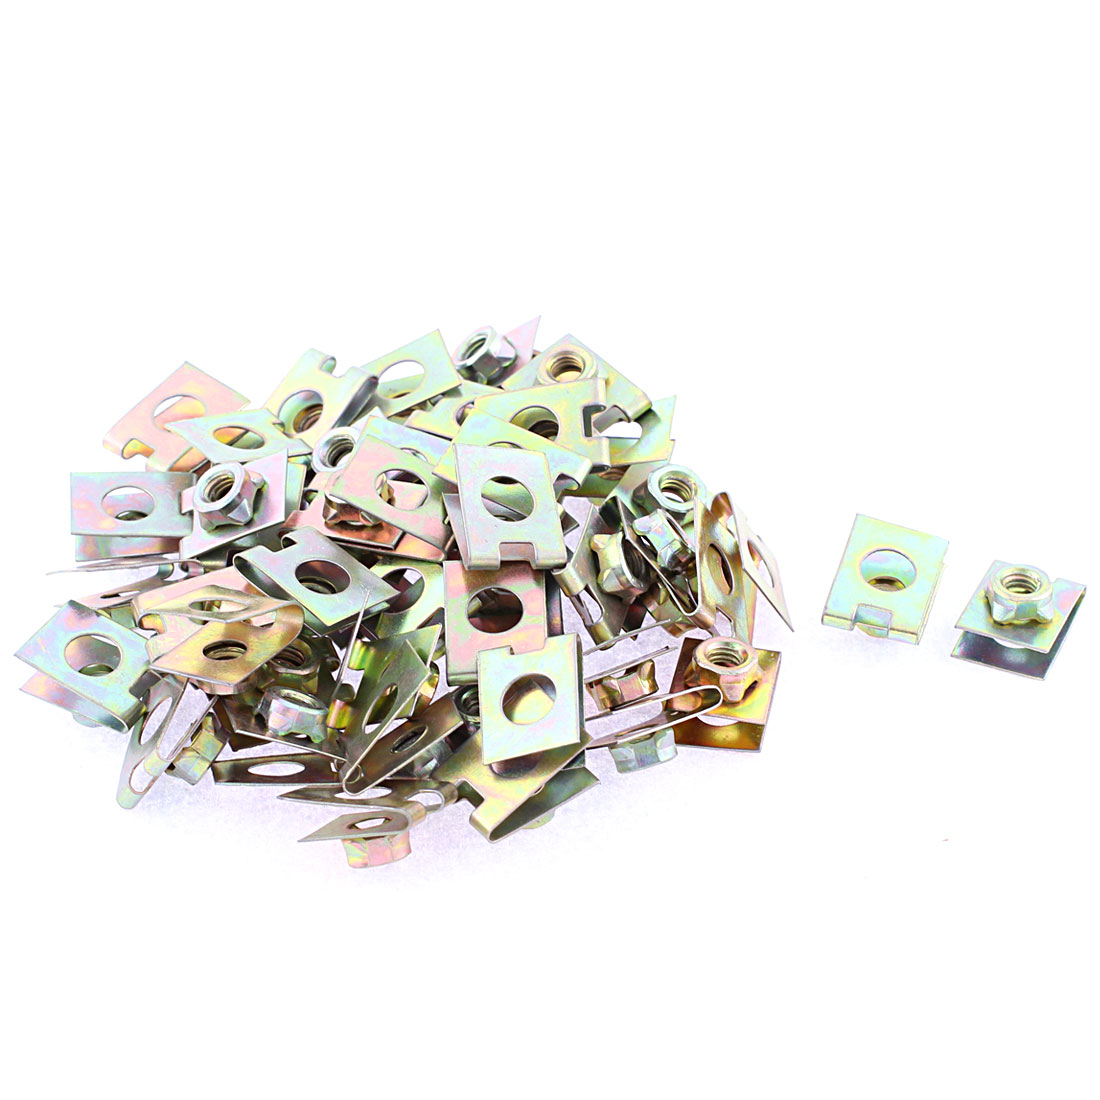 50 Pcs 22mm x 16mm Metal Plate U-Type Clips Speed Nuts for Car Panel Fender